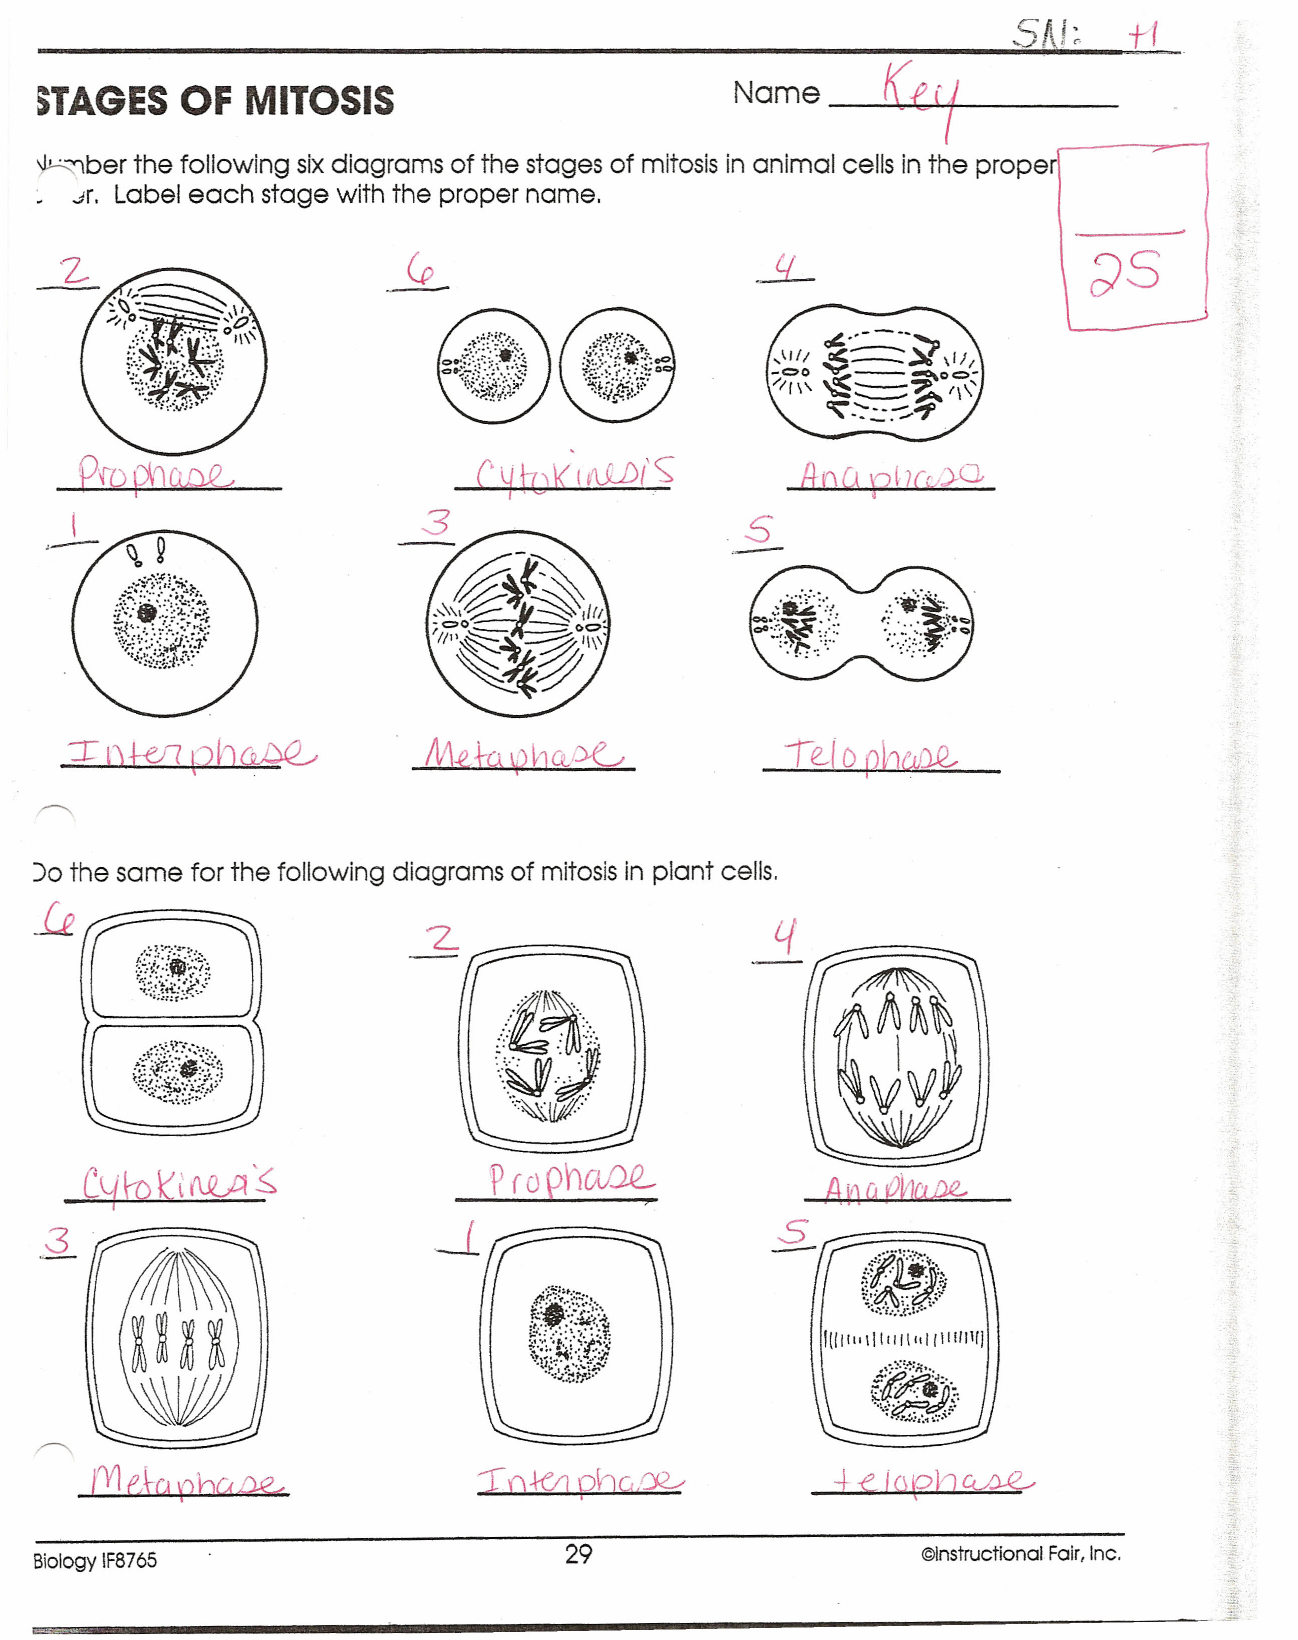 Stages Of Mitosis For Cell Cycle Worksheet Answers Biology